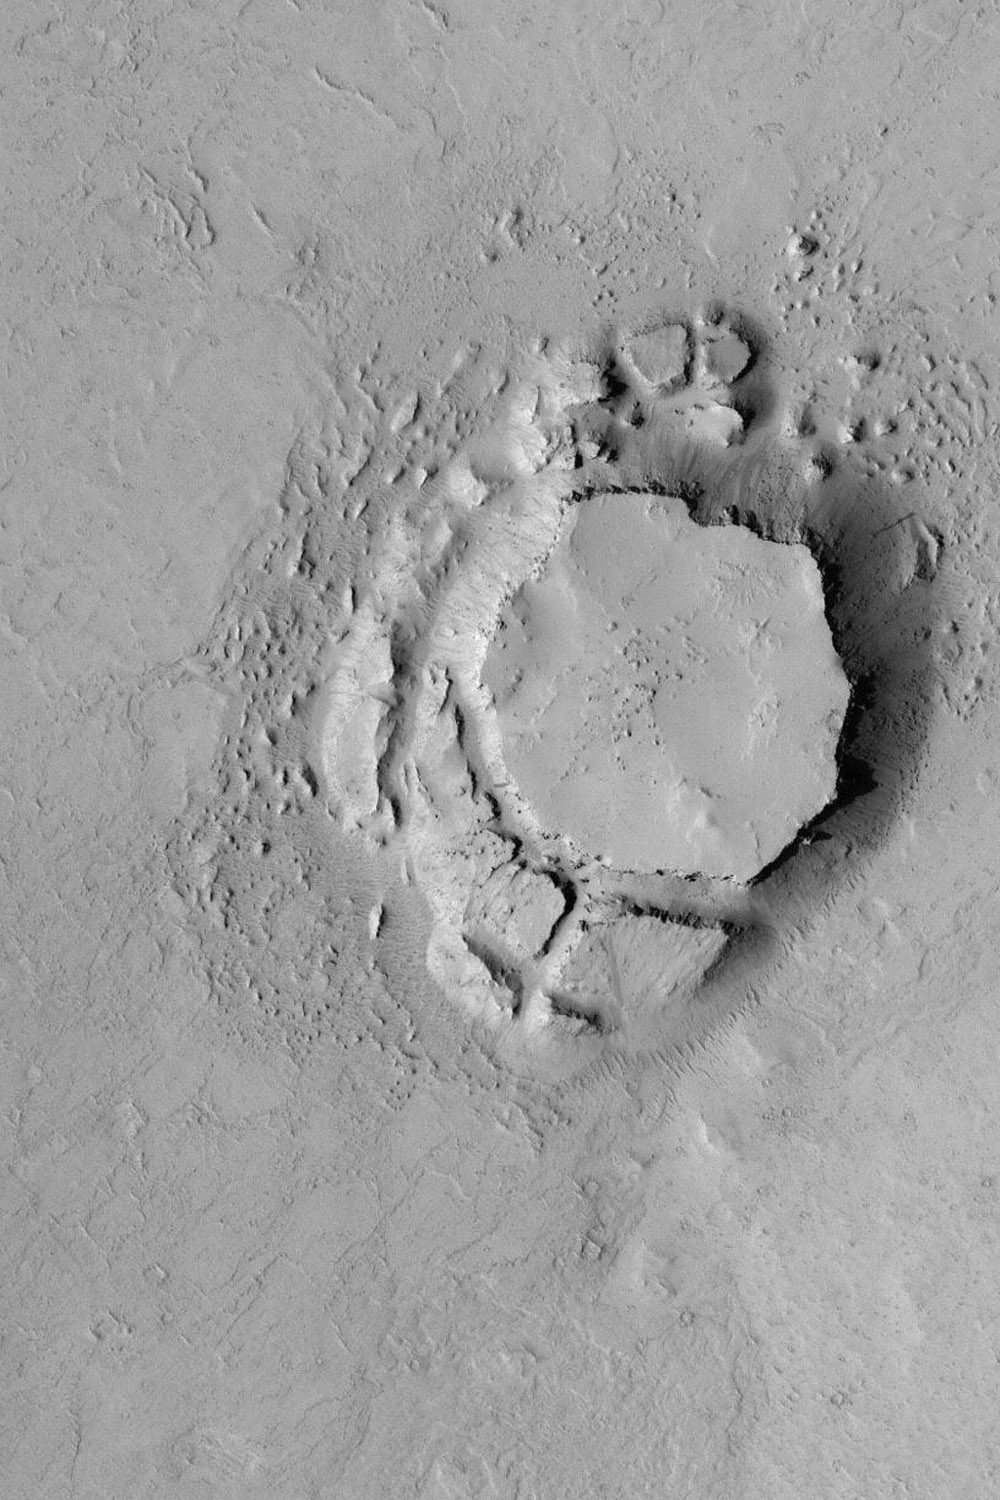 NASA's Mars Global Surveyor shows a mesa in the Avernus Colles region of Mars. The mesa and very large blocks that have been shed from its slopes are evident.